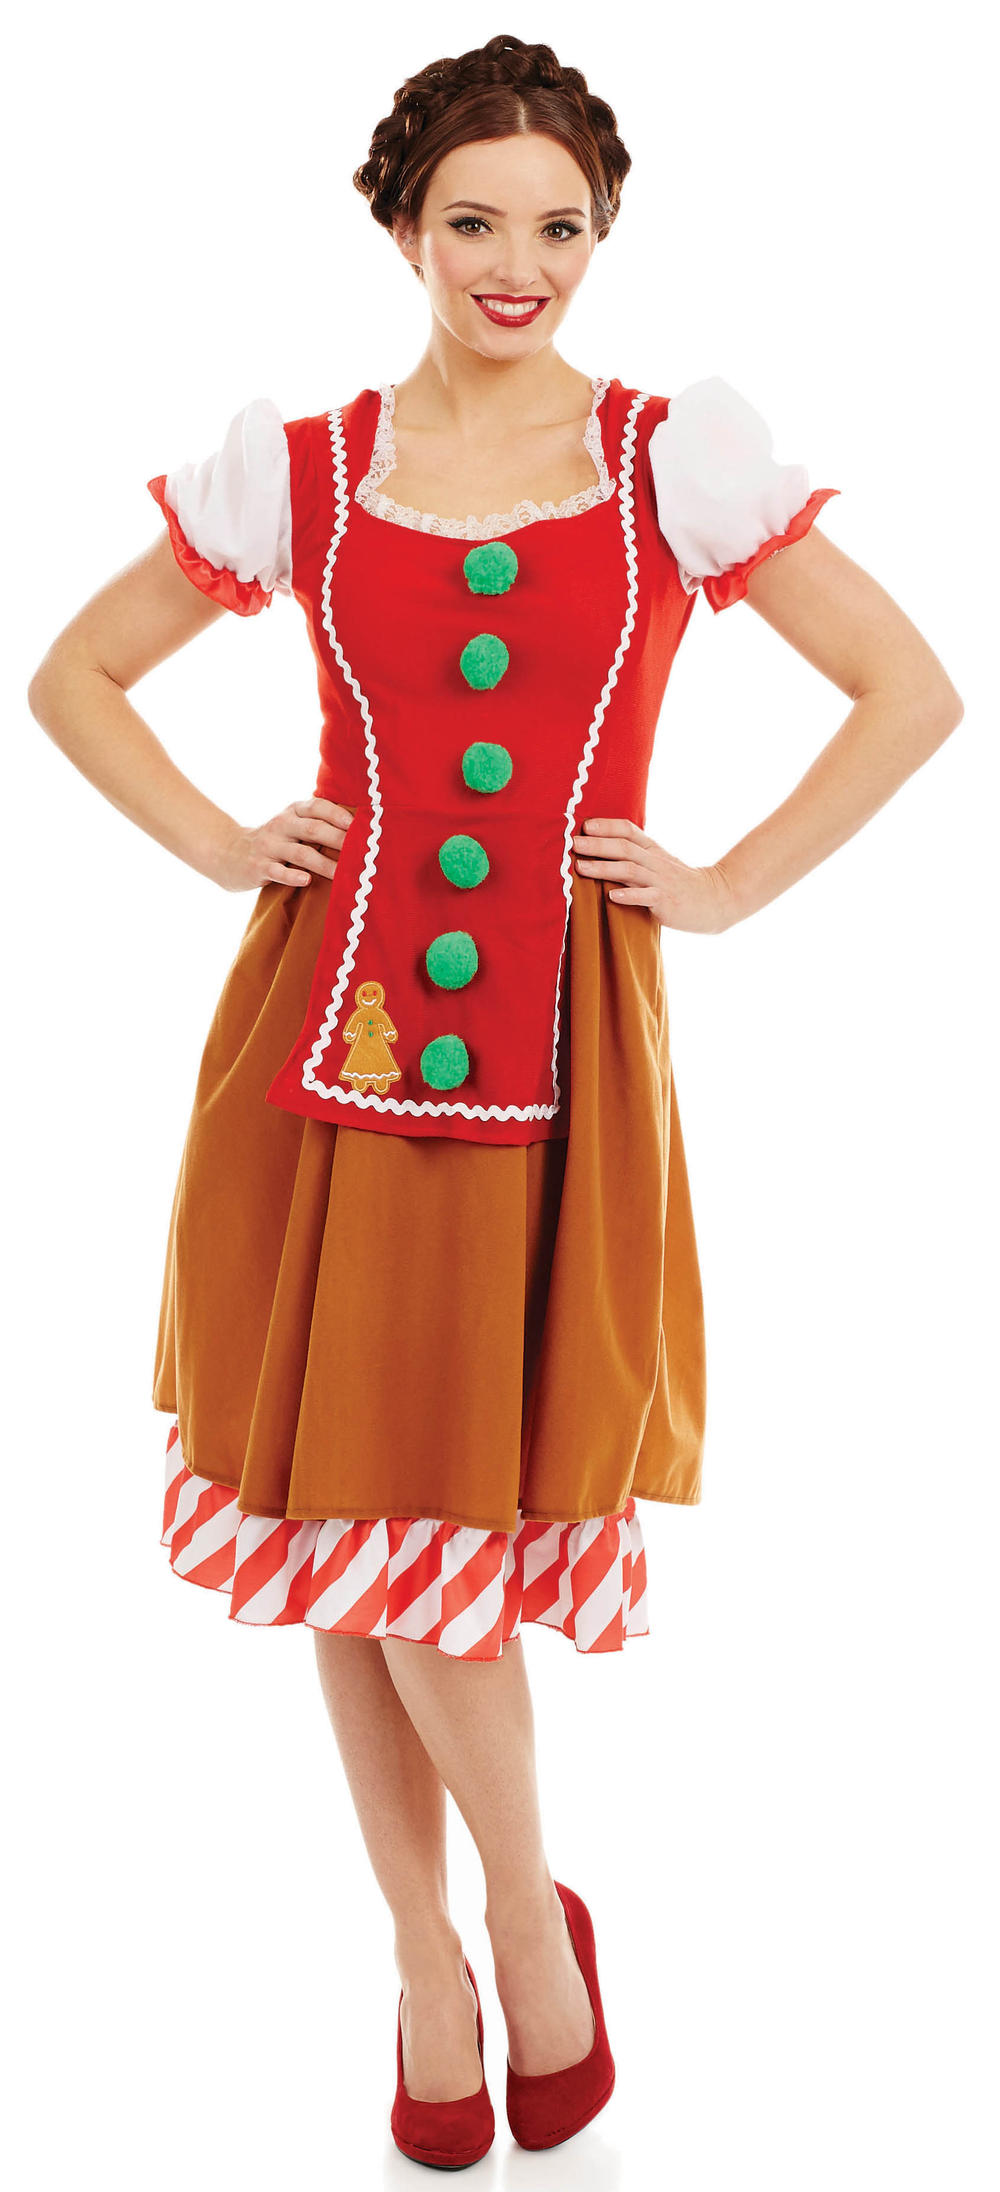 Miss Gingerbread Ladies Fancy Dress Festive Christmas Food Adults Costume Outfit